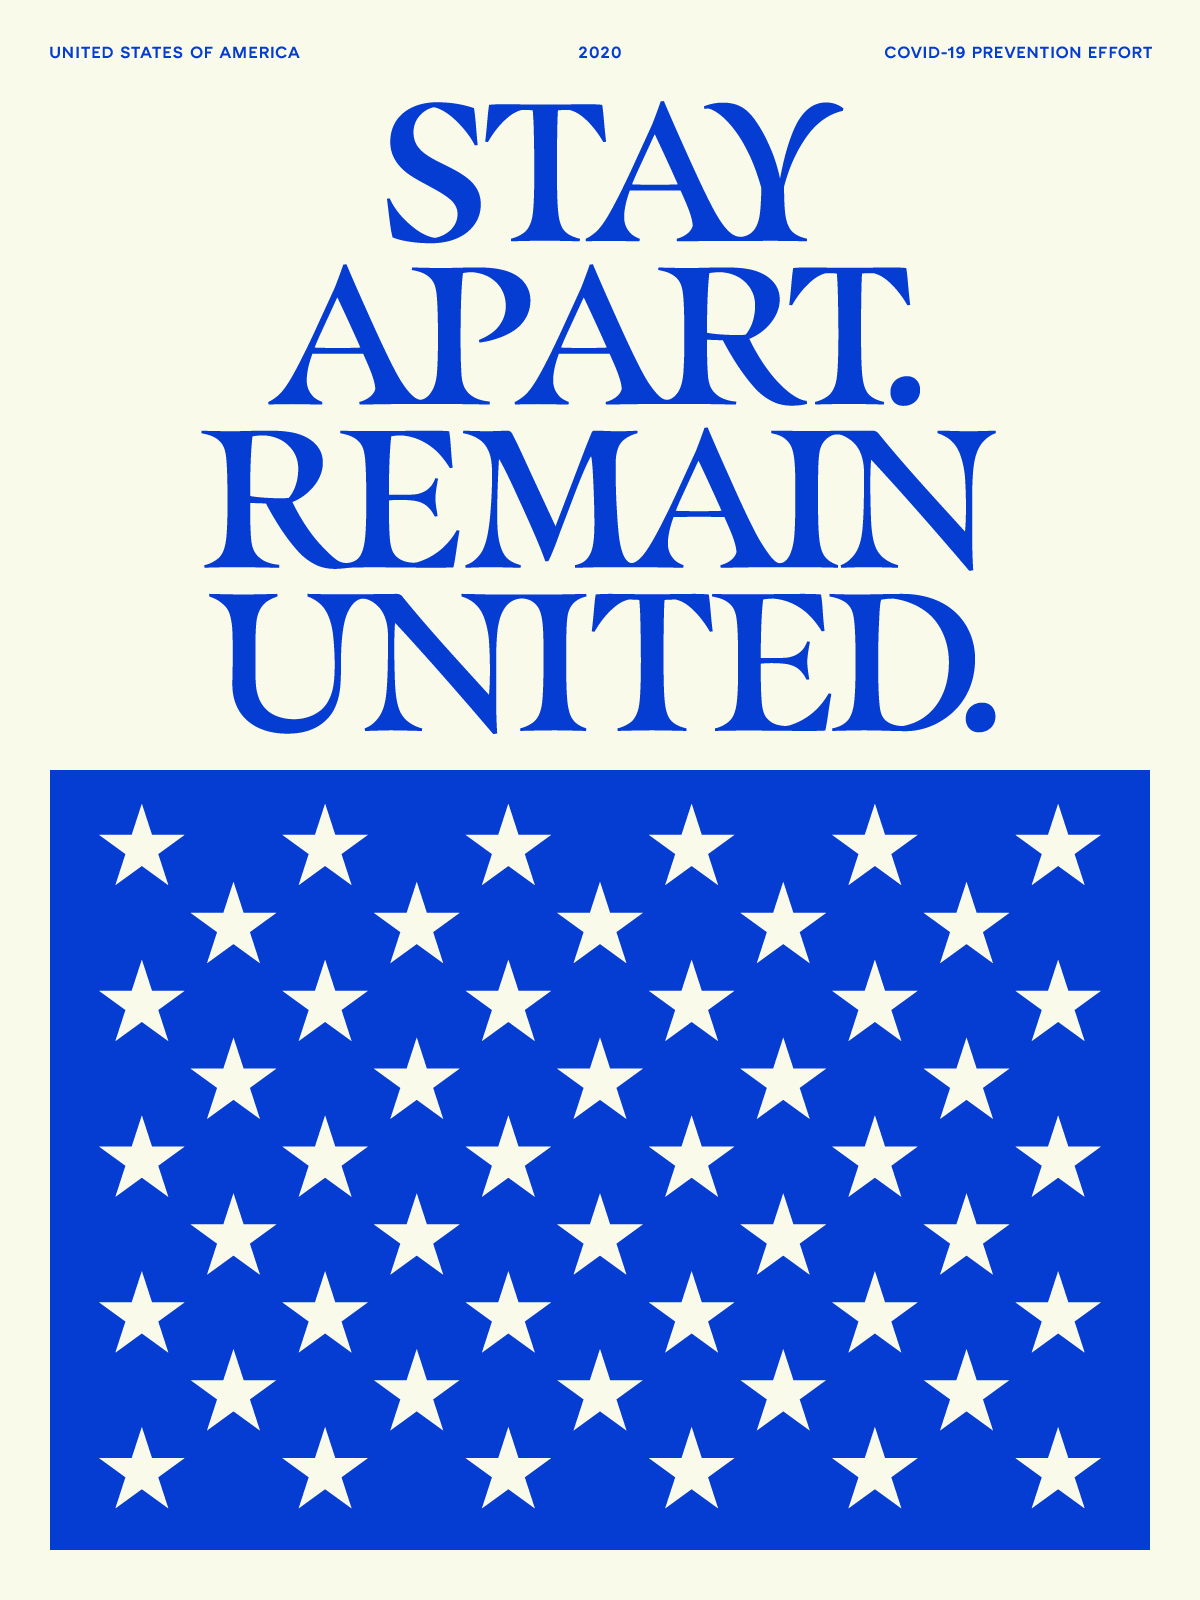 Blue stars with the words STAY APART REMAIN UNITED